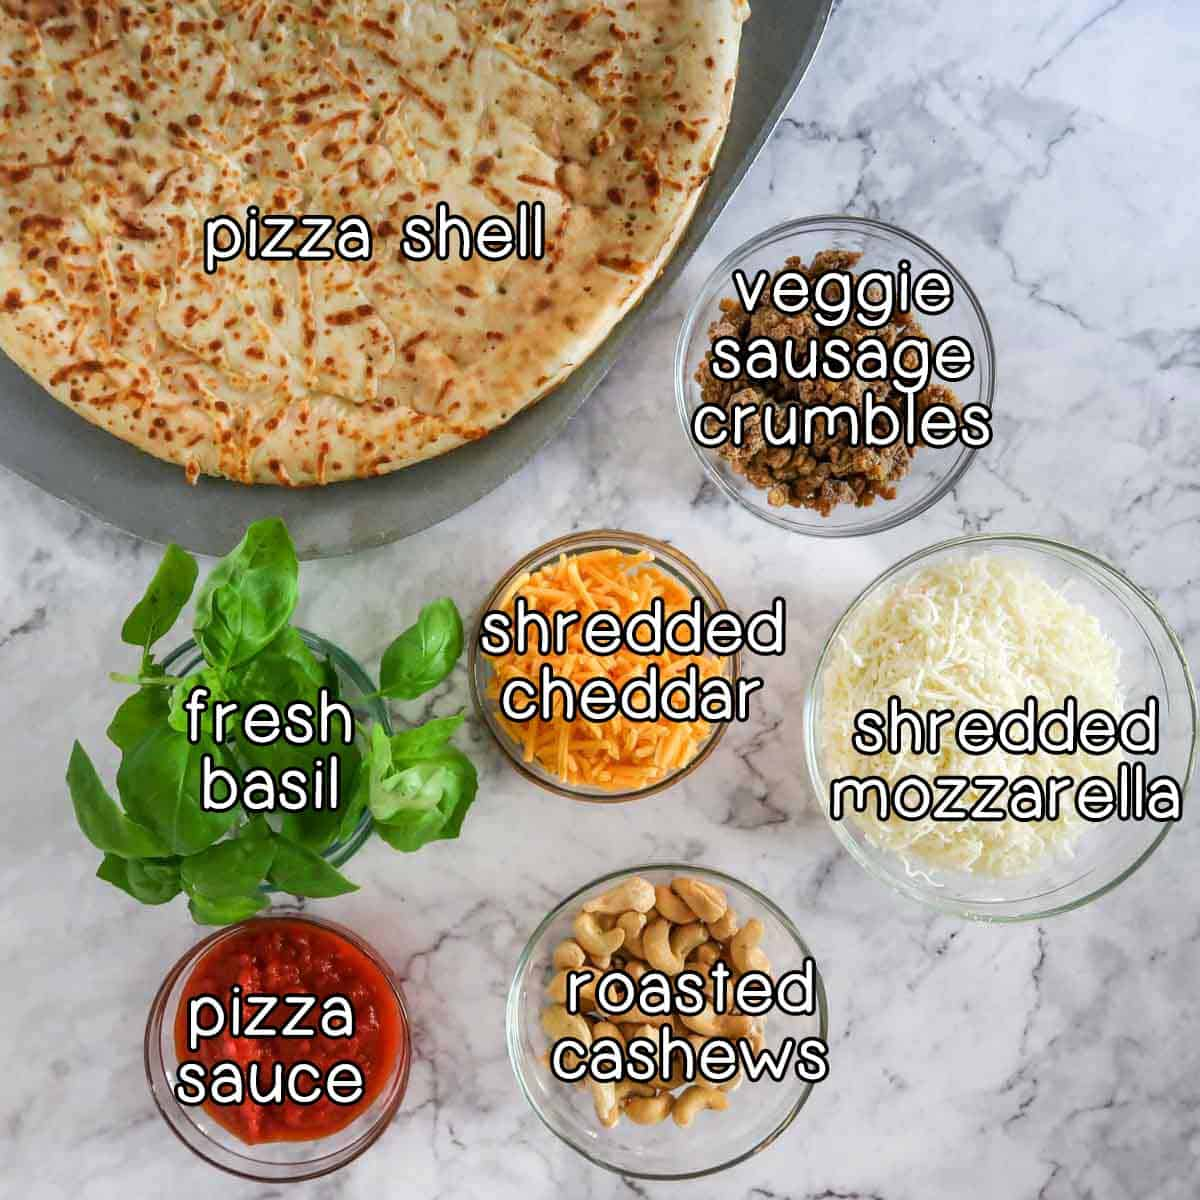 Overhead shot of ingredients- pizza shell, veggie sausage crumbles, fresh basil, shredded cheddar, shredded mozzarella, pizza sauce, and roasted cashews.